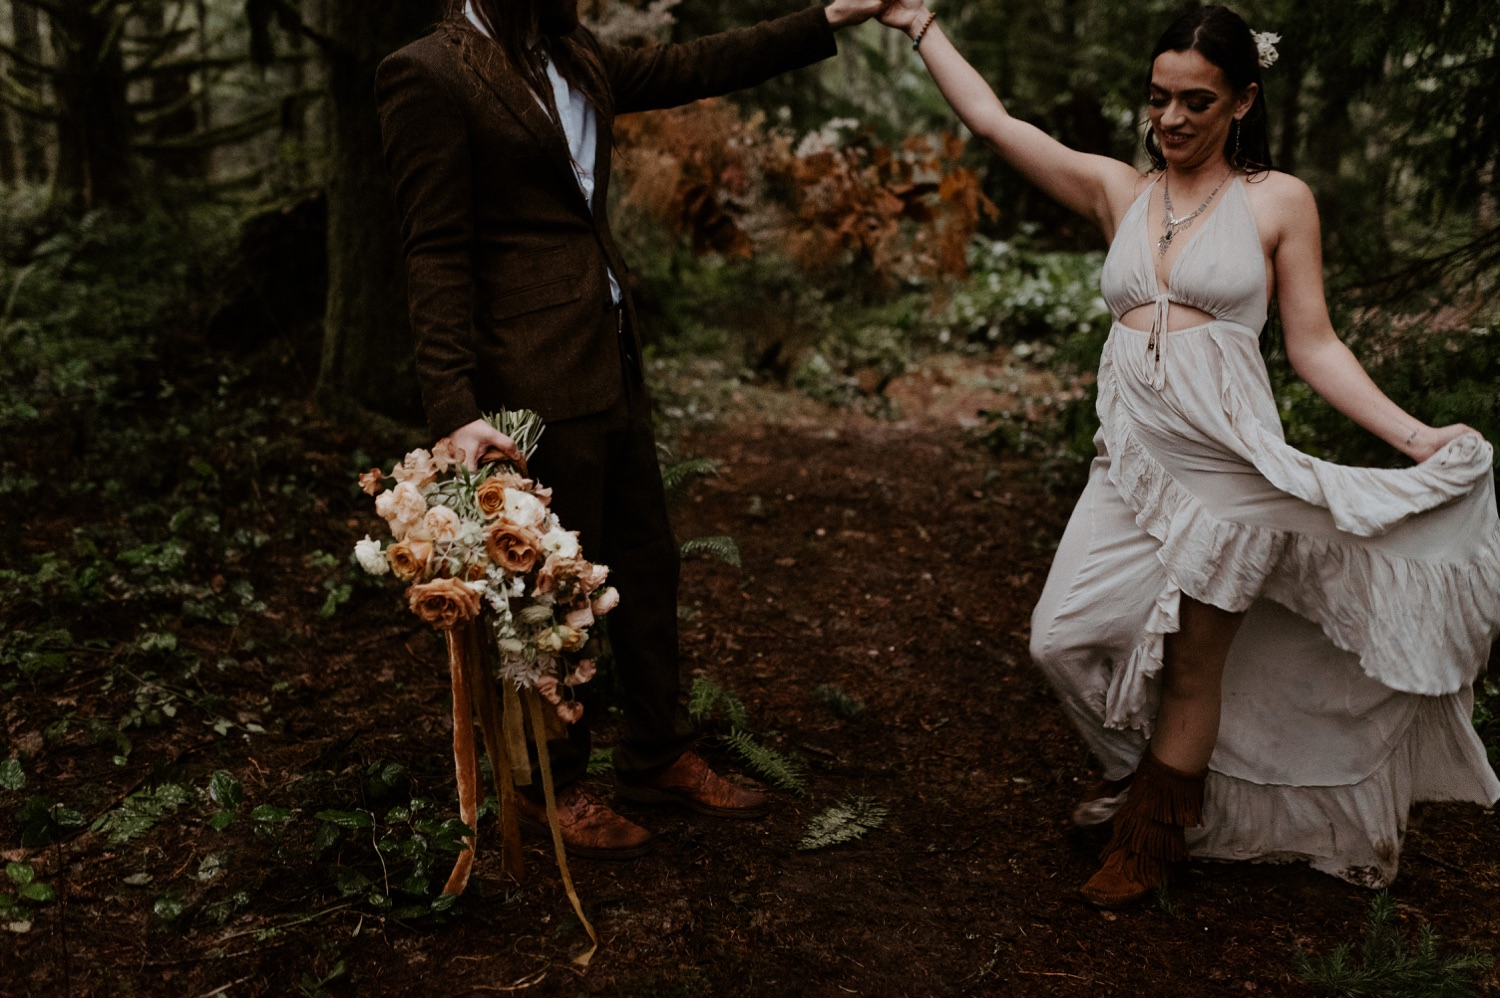 The Woodlands House Sandy Oregon Elopement Portland Elopement Photographer PNW Adventurous Elopement Anais Possamai Photography 028